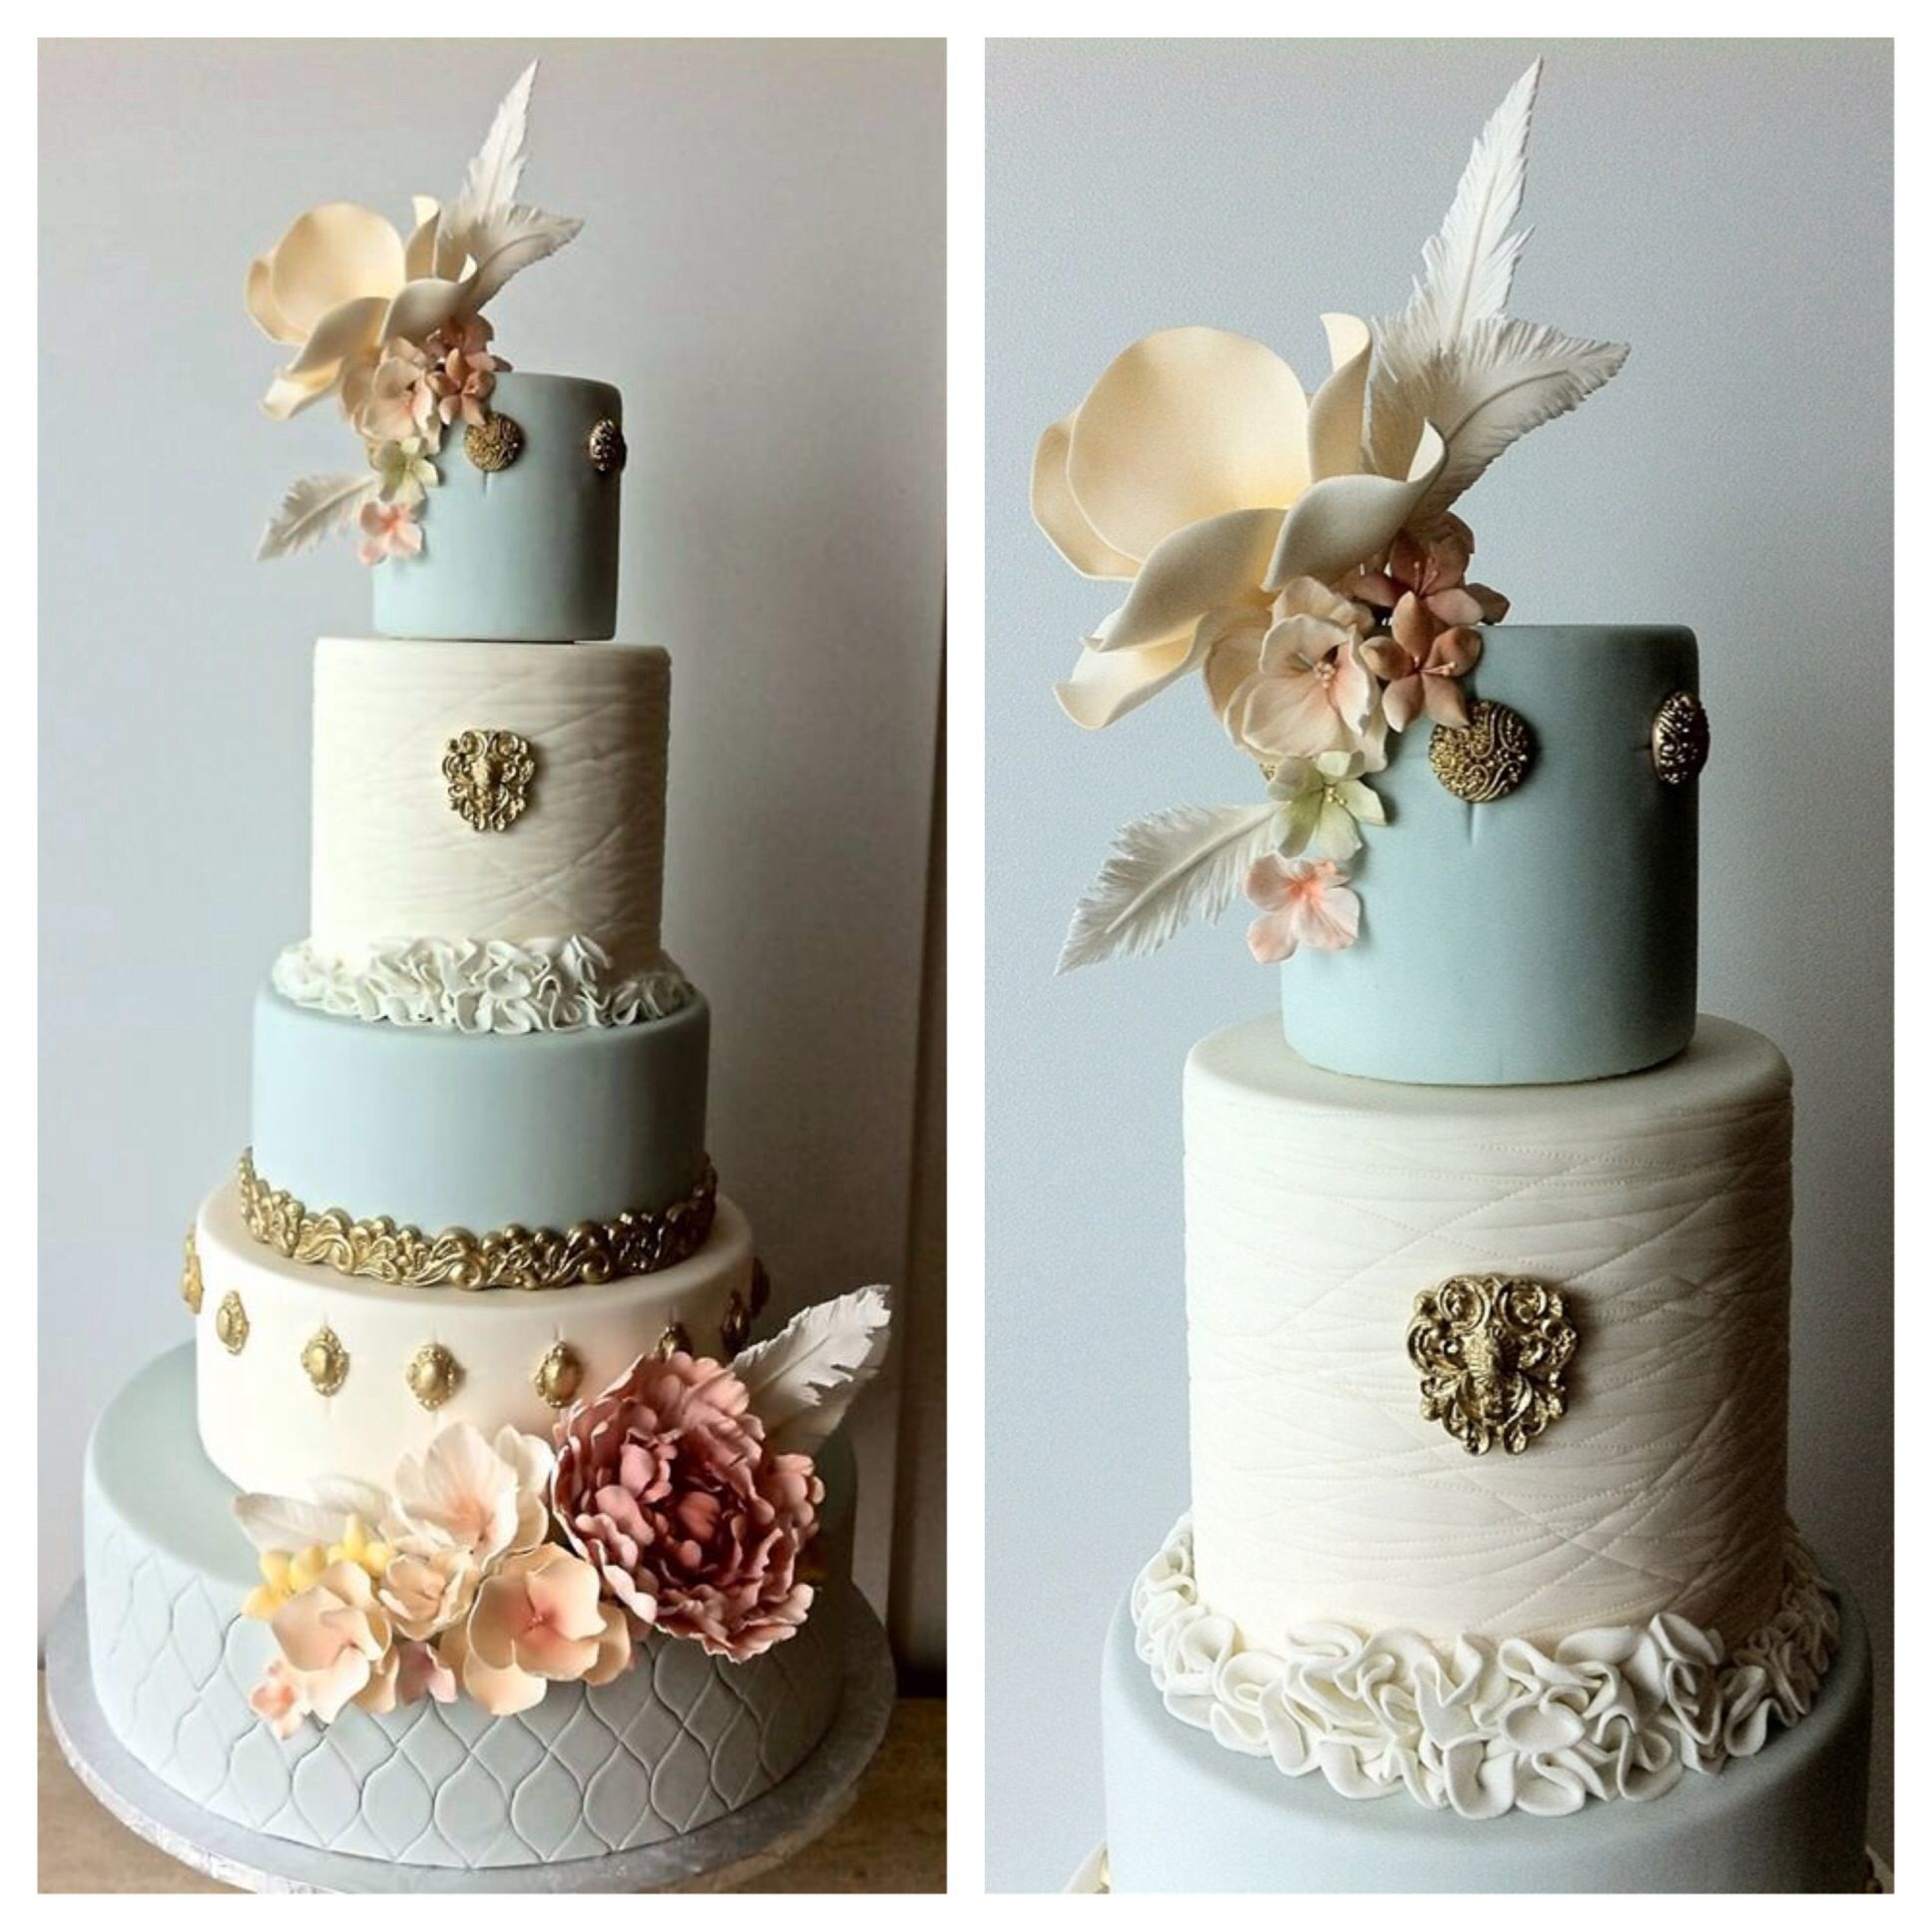 Wedding Cake Class: Here Is The Result From My Couture Wedding Cakes Class